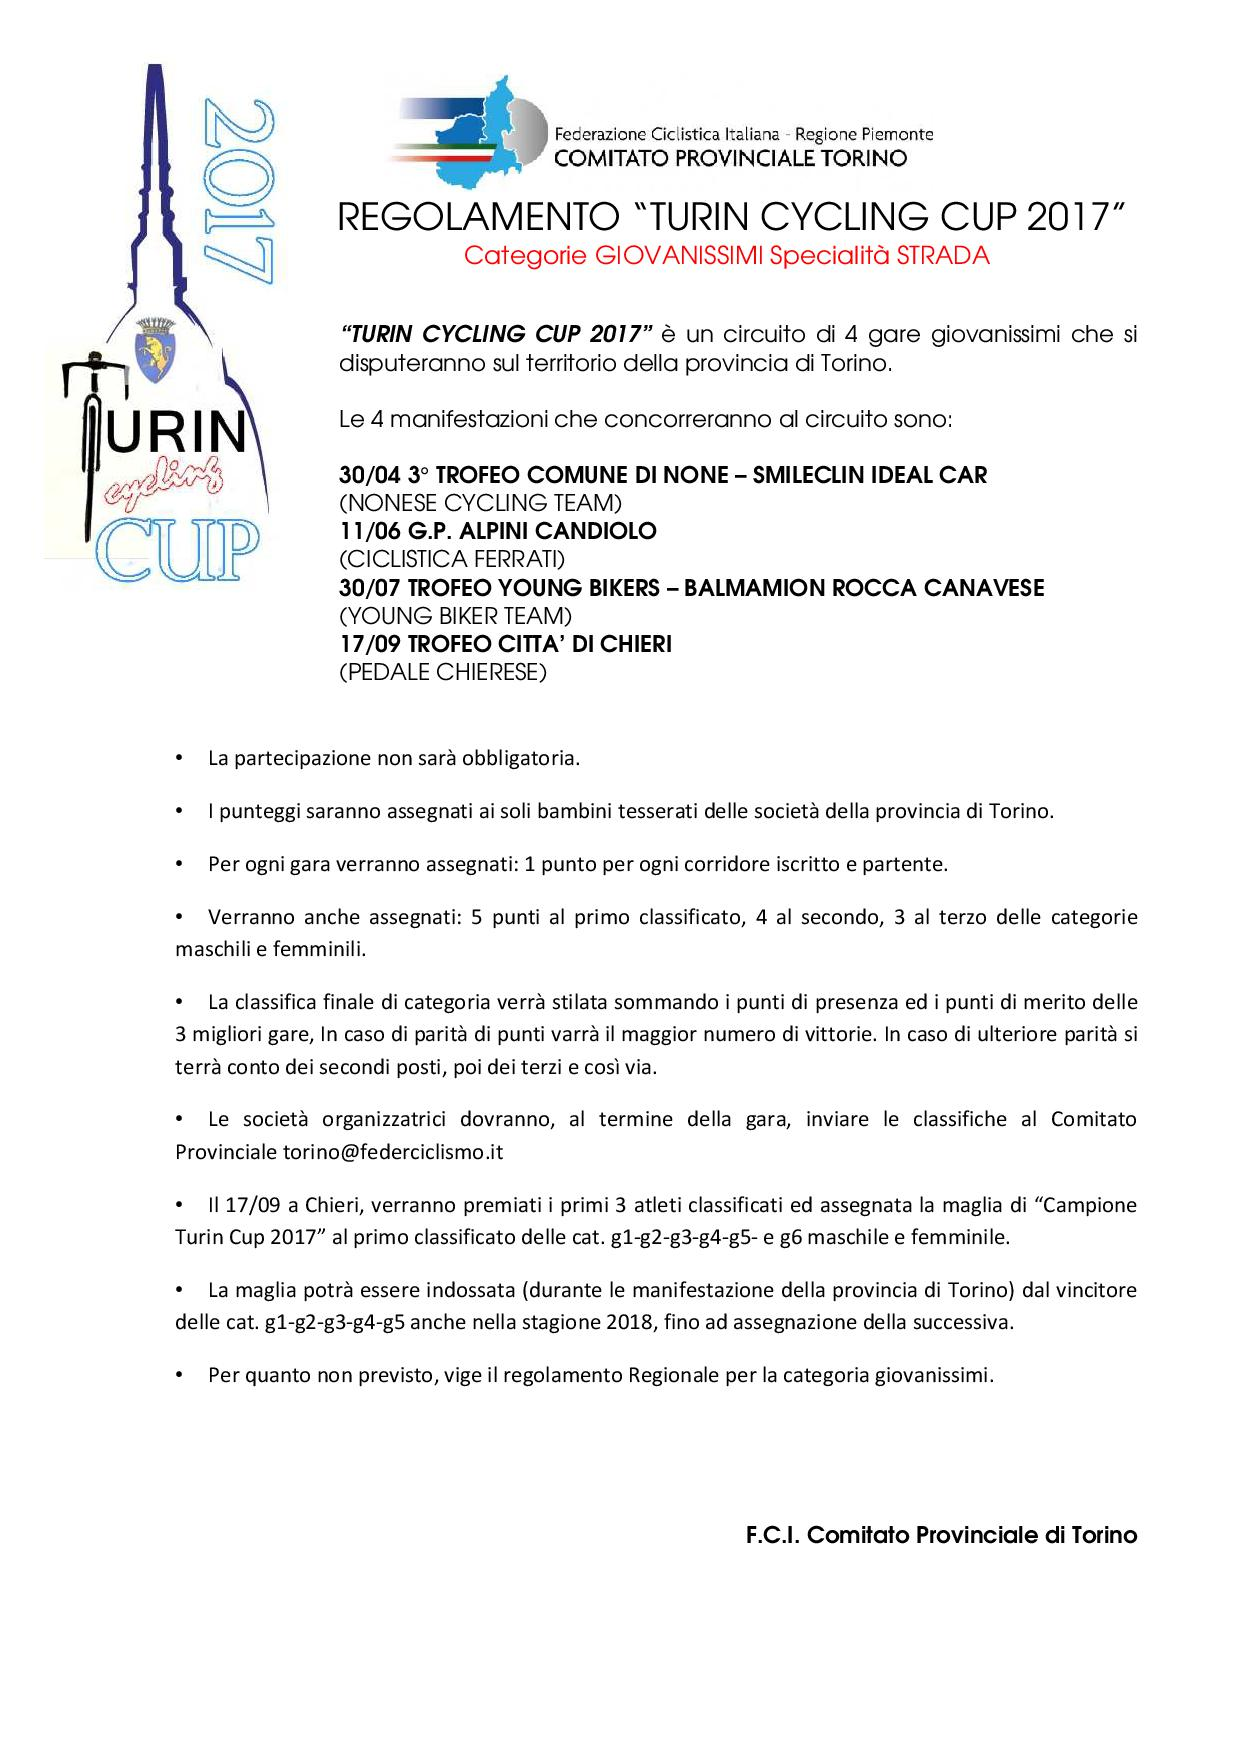 REGOLAMENTO Turin Cycling Cup 2017